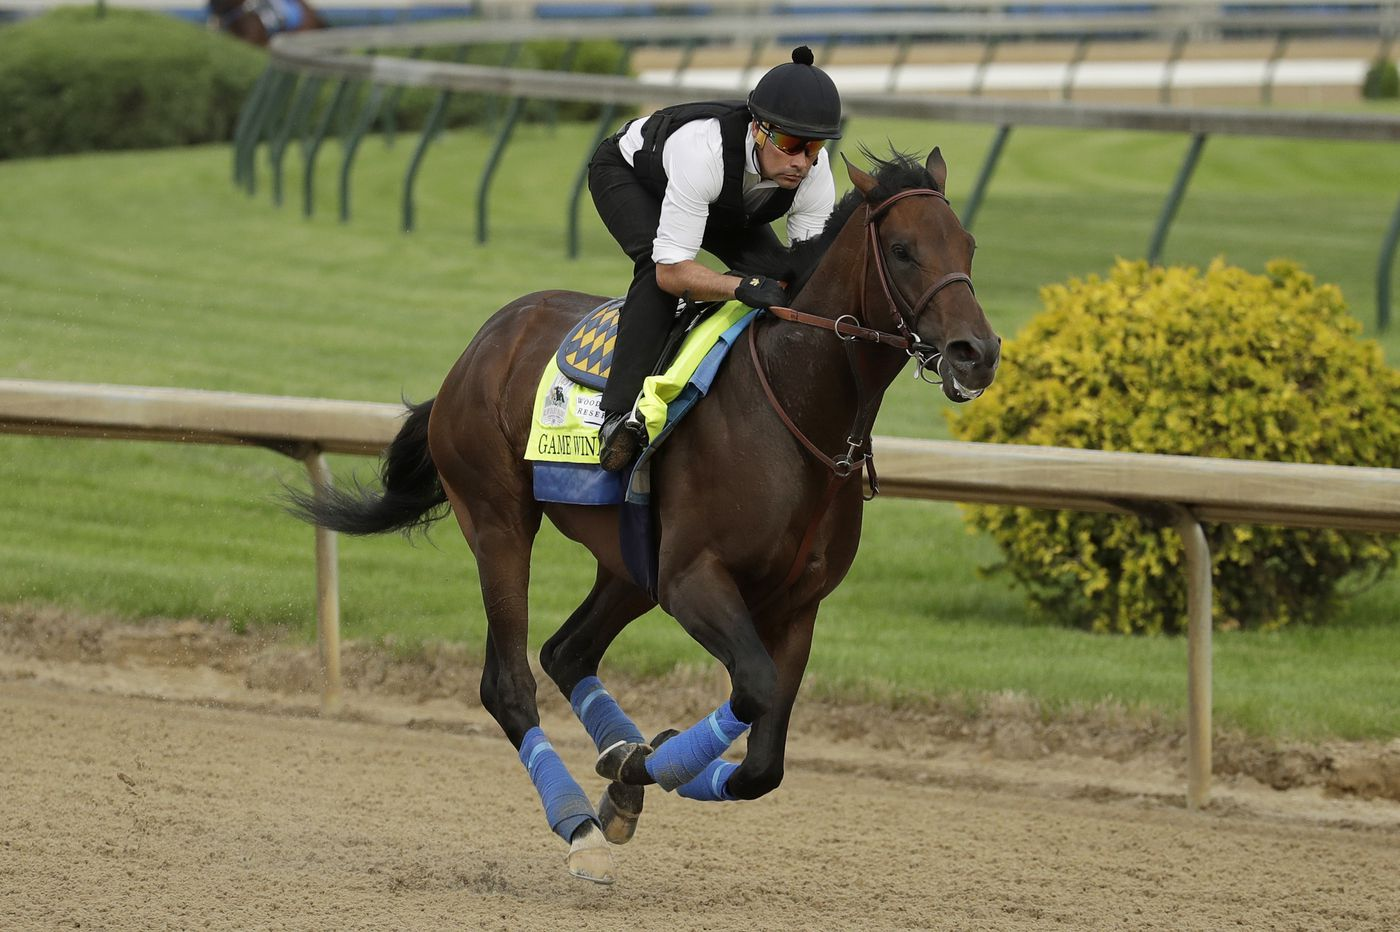 Betting Venues Continue To Be Limited For Kentucky Derby